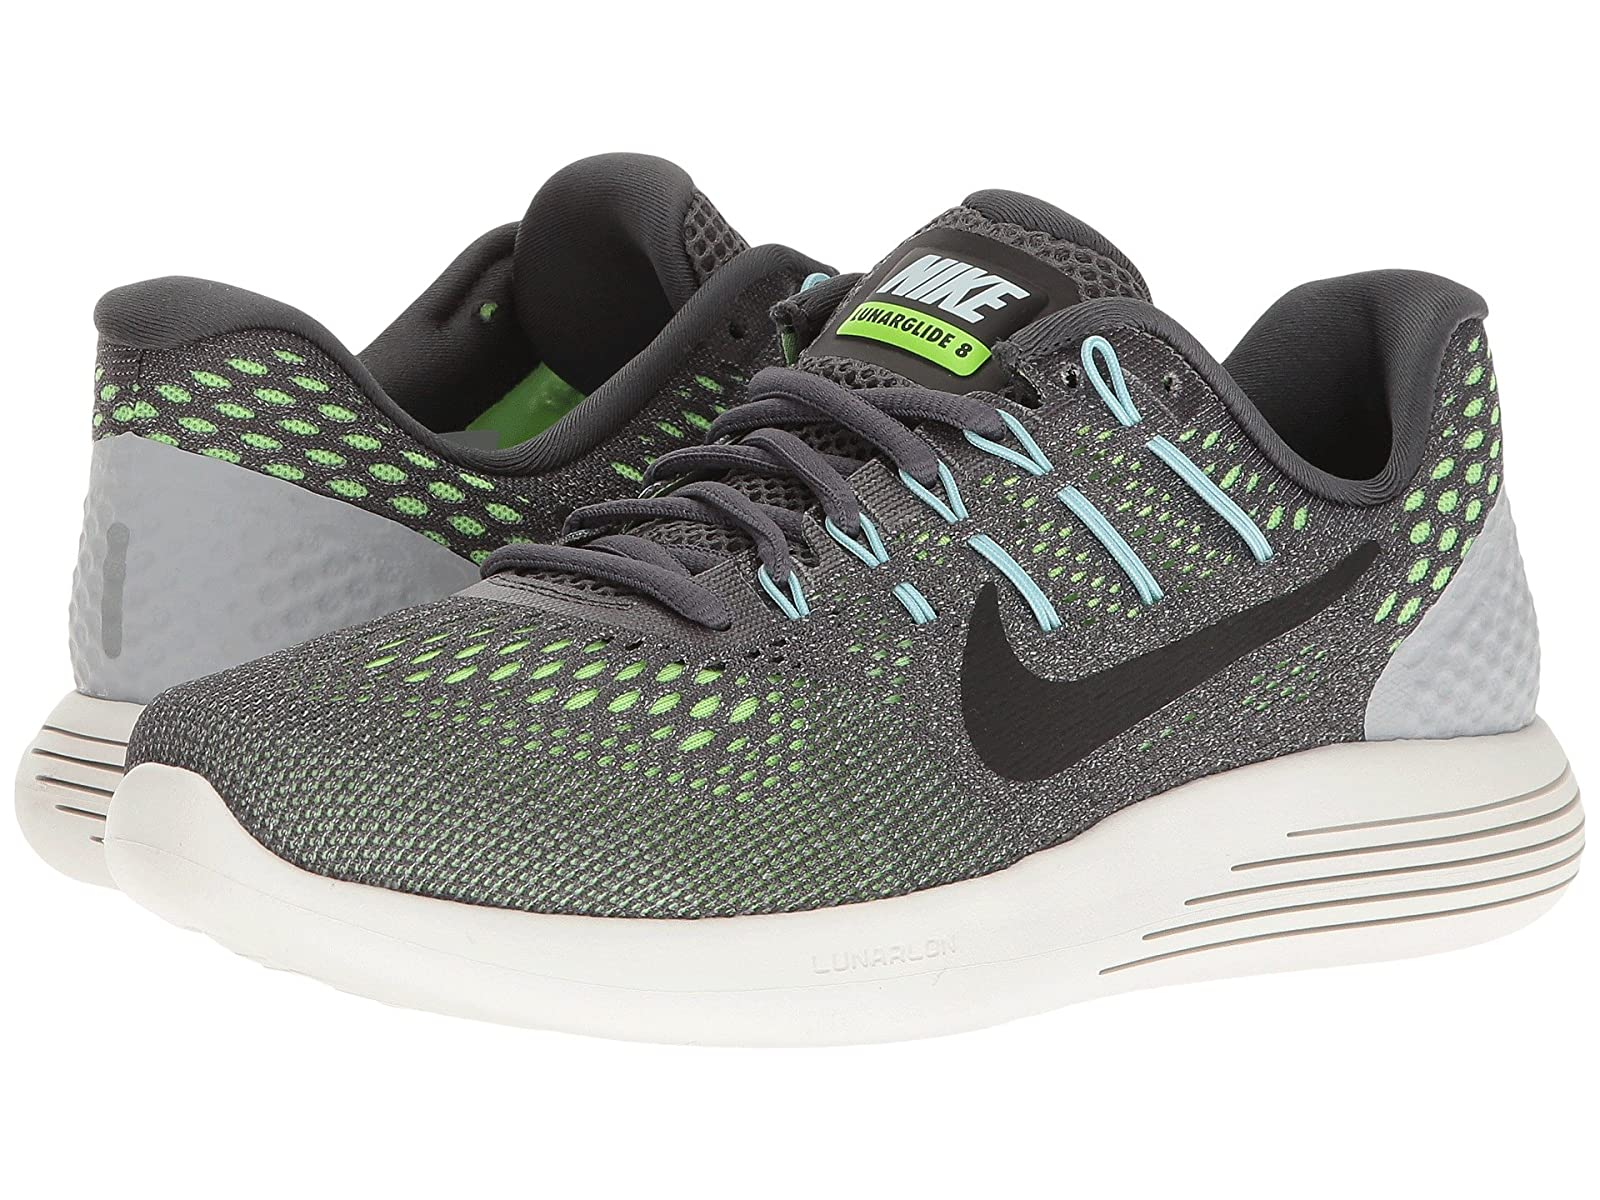 Nike Lunarglide 8Cheap and distinctive eye-catching shoes